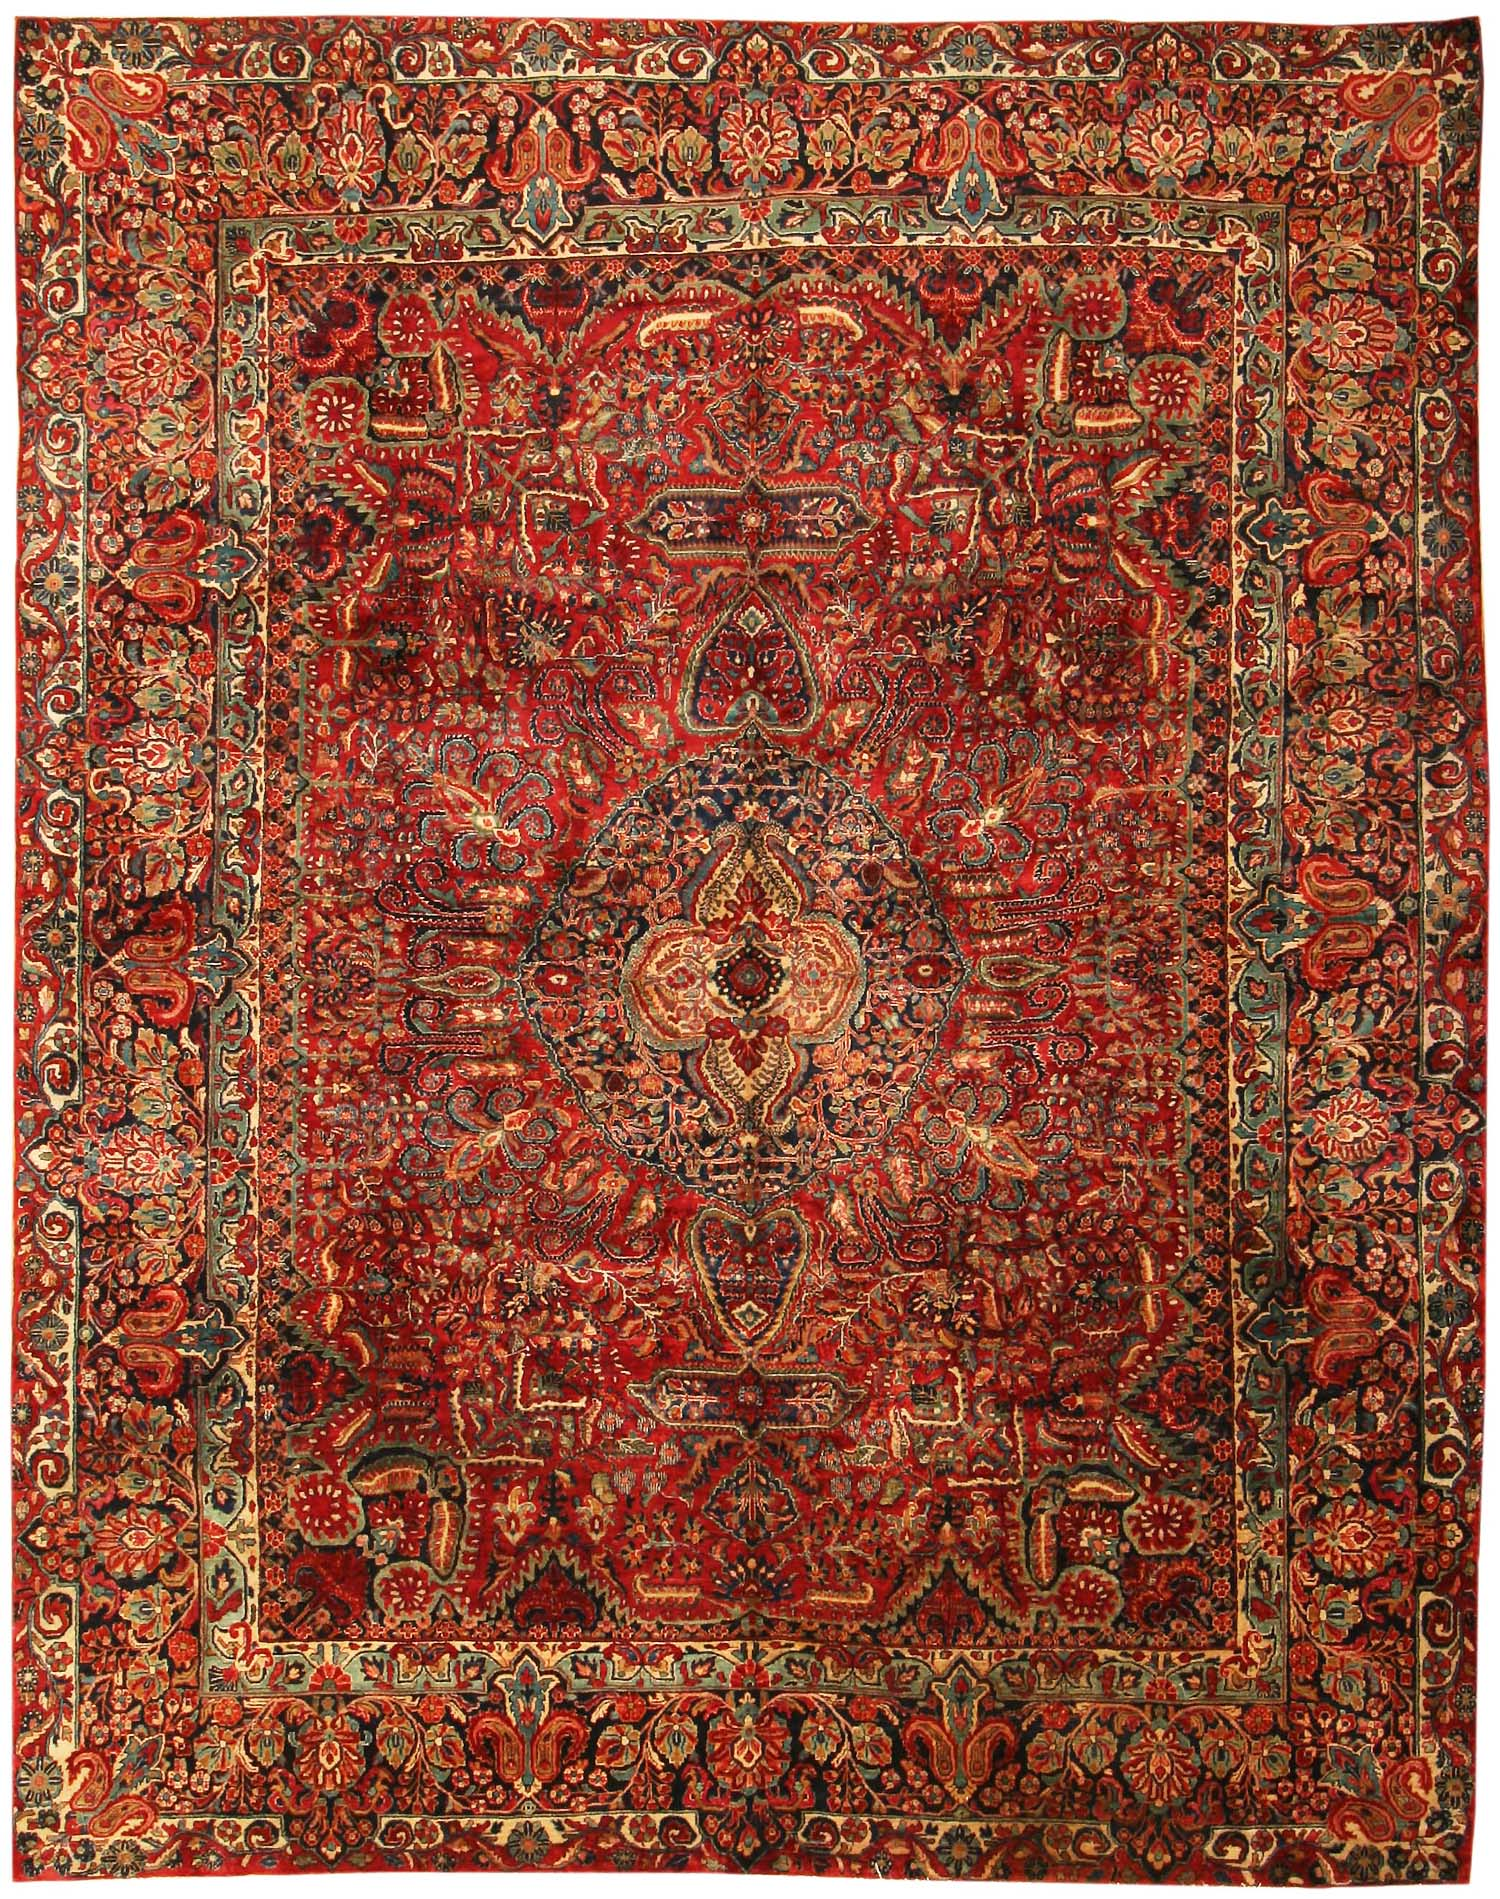 Old Rugs For Sale Home Decor